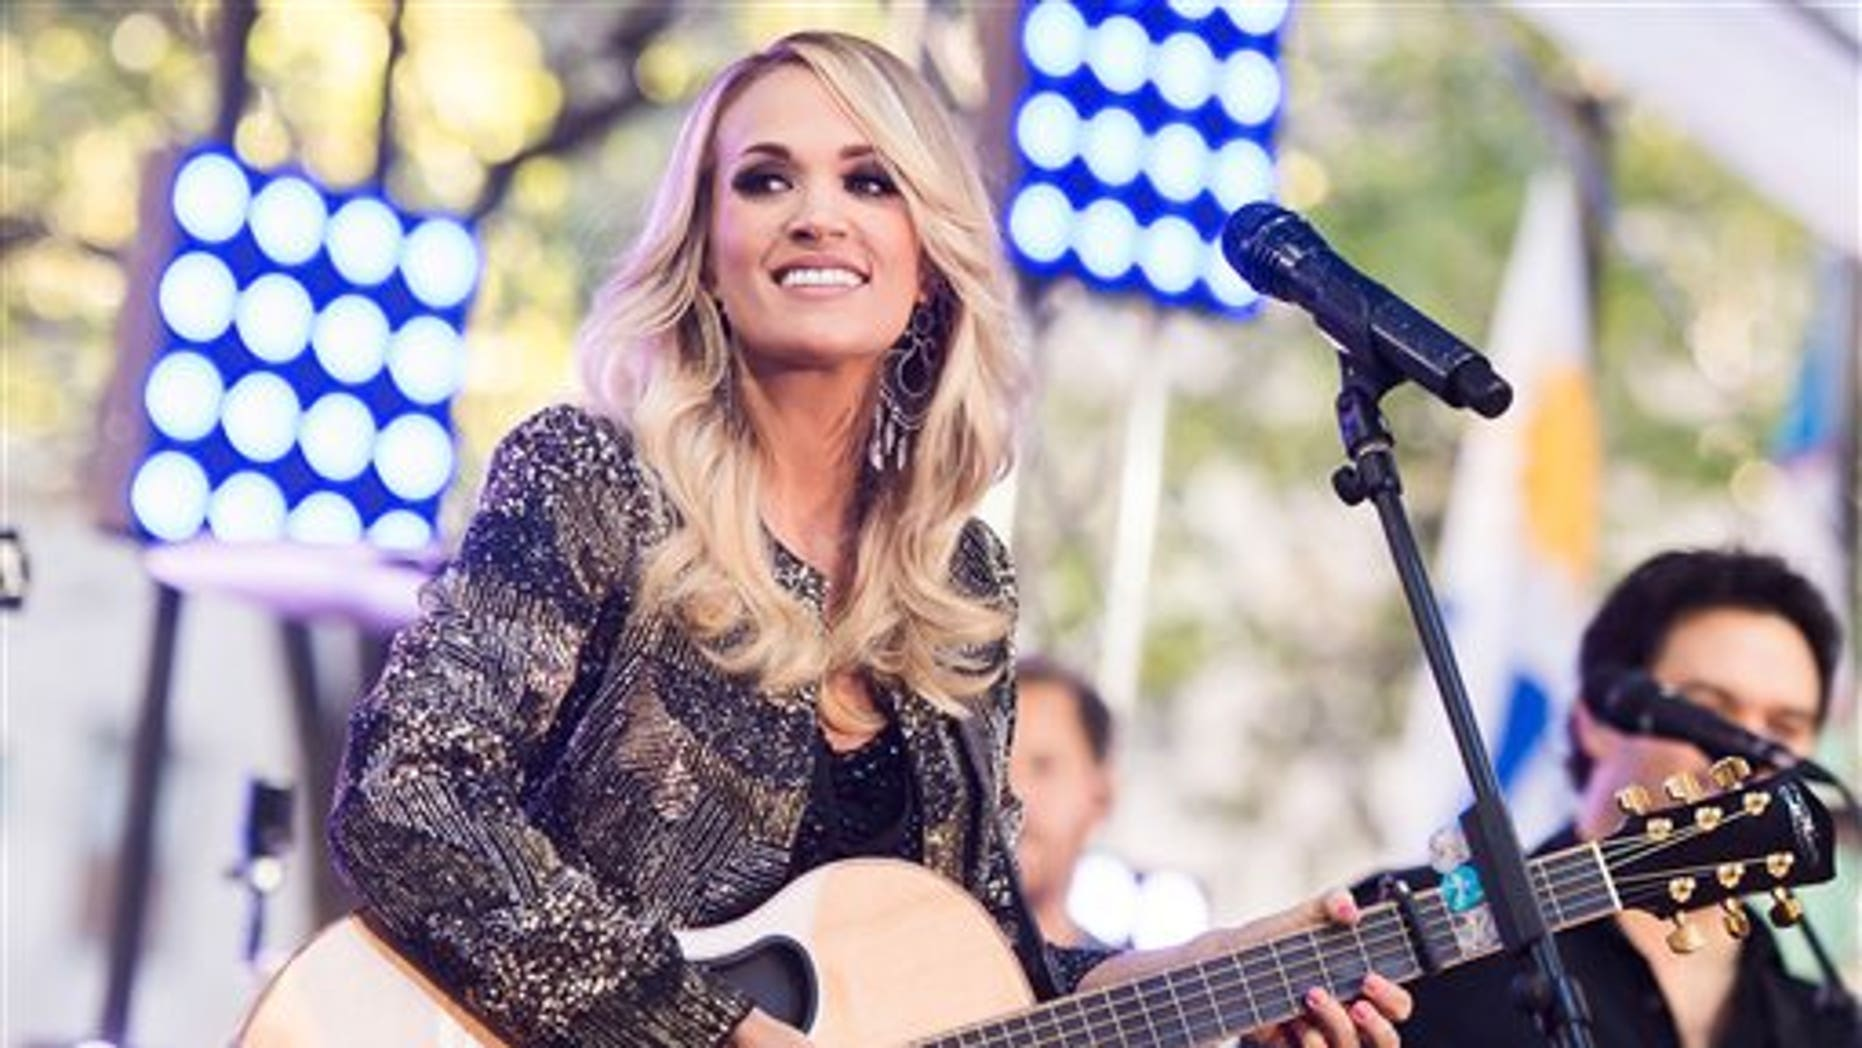 Carrie Underwood performs Friday in New York. (Photo by Charles Sykes/Invision/AP)